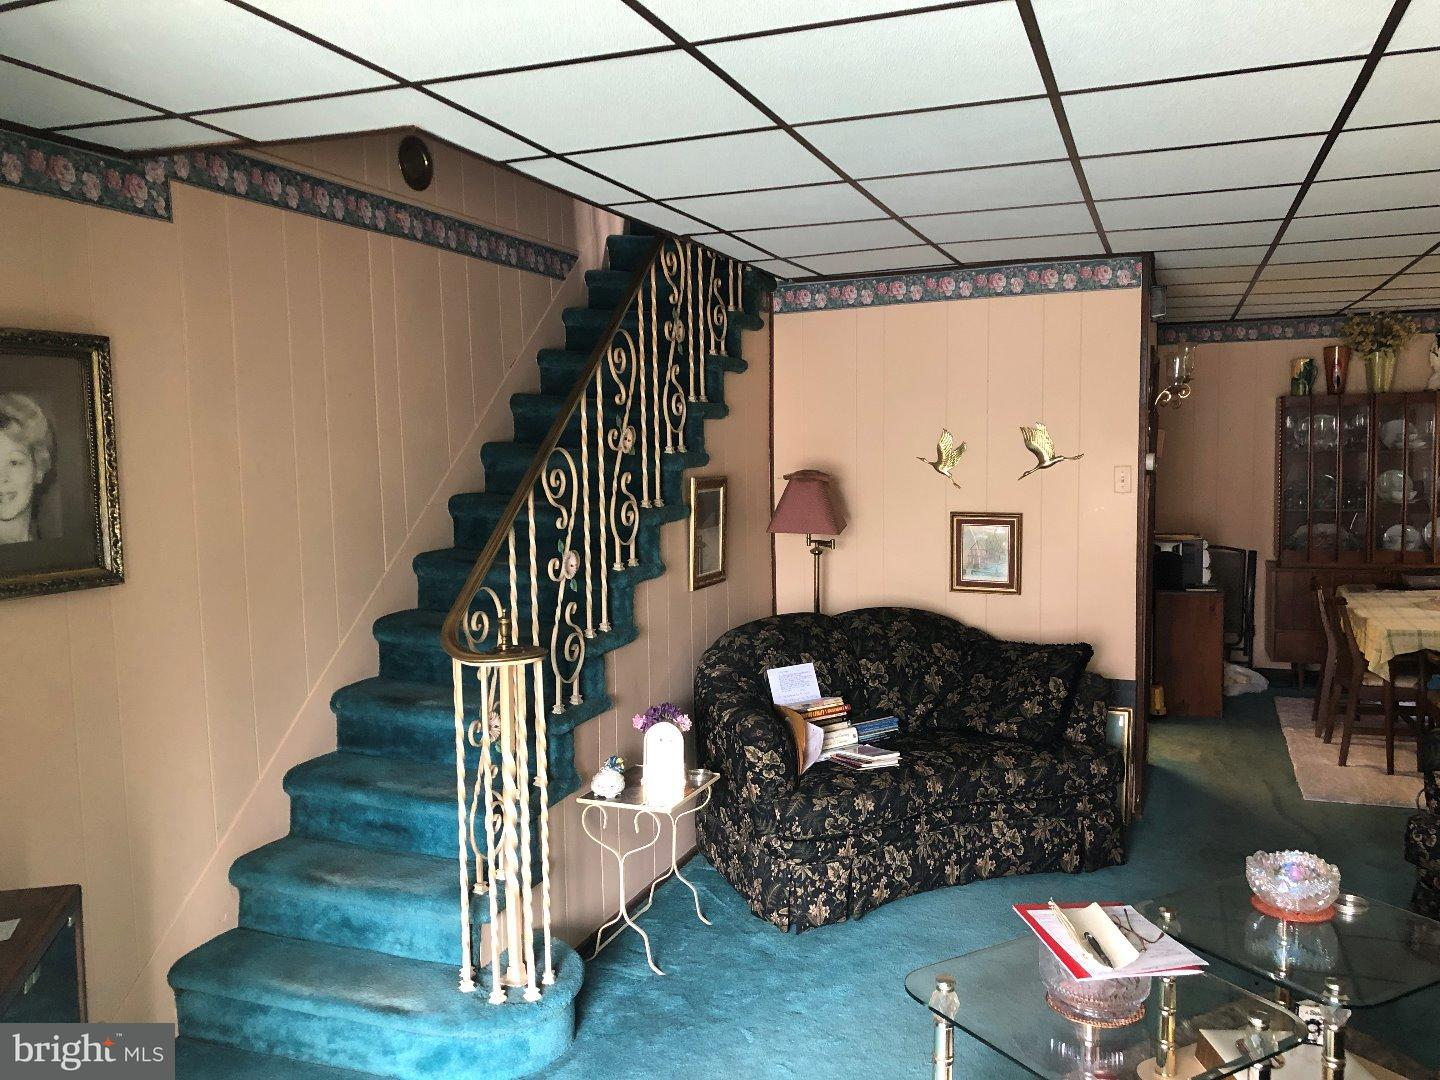 806 RUNDALE AVE, YEADON - Listed at $60,000, YEADON